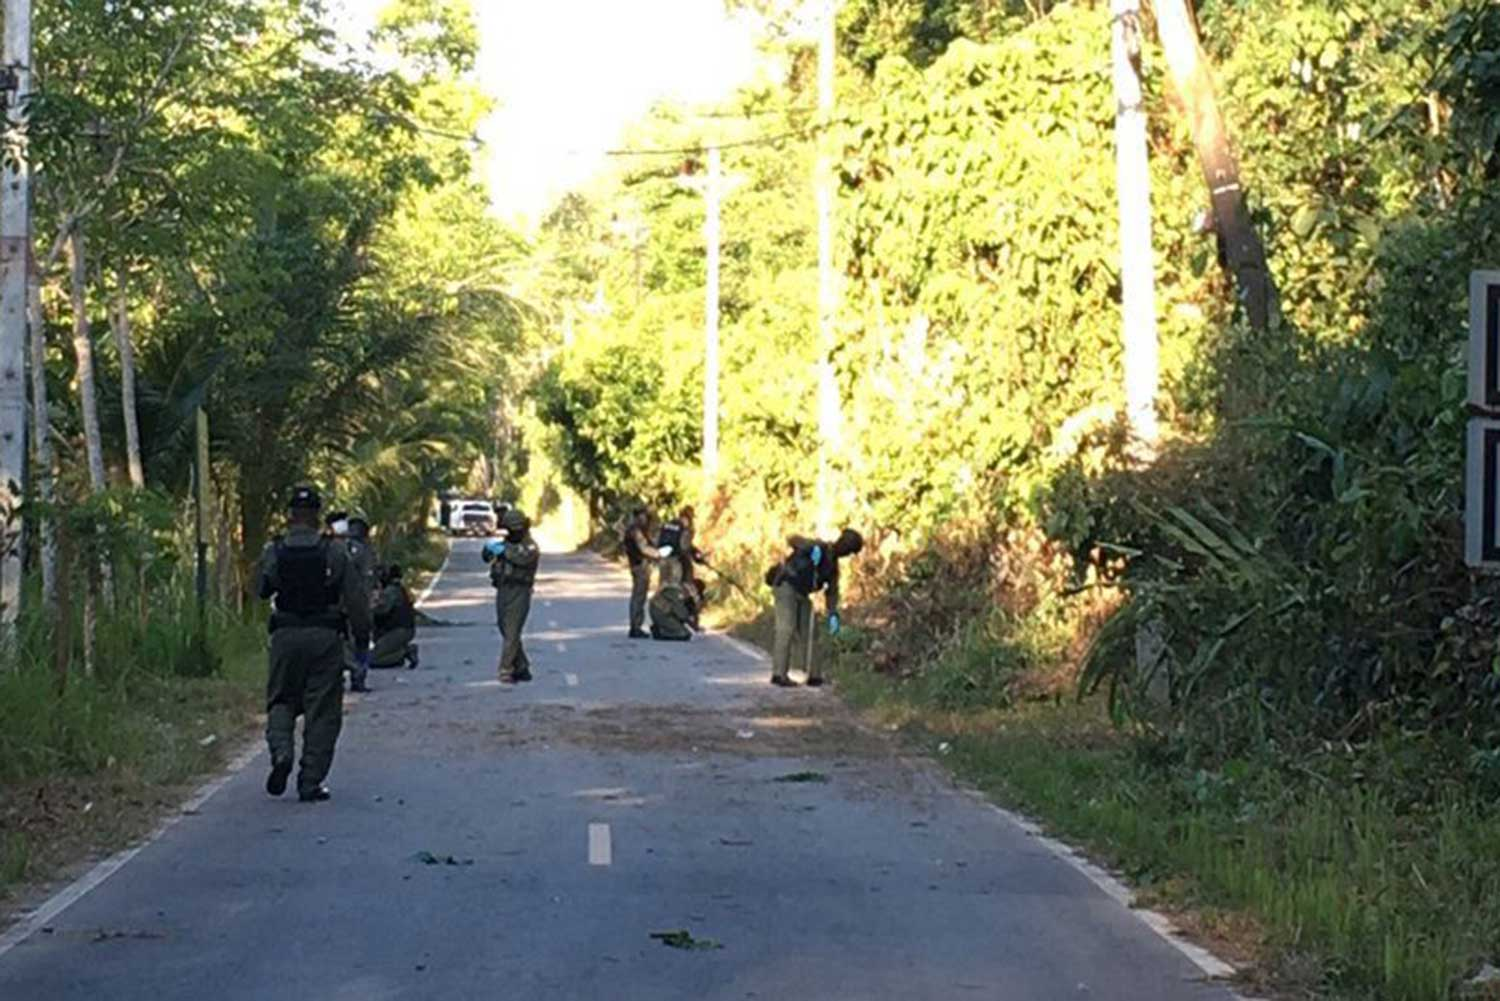 Soldiers, police and bomb disposal officers inspect the scene of a bomb blast in Rangae district of Narathiwat on Friday evening. Two rangers were hurt in the explosion. (Photo by Waedao Harai)